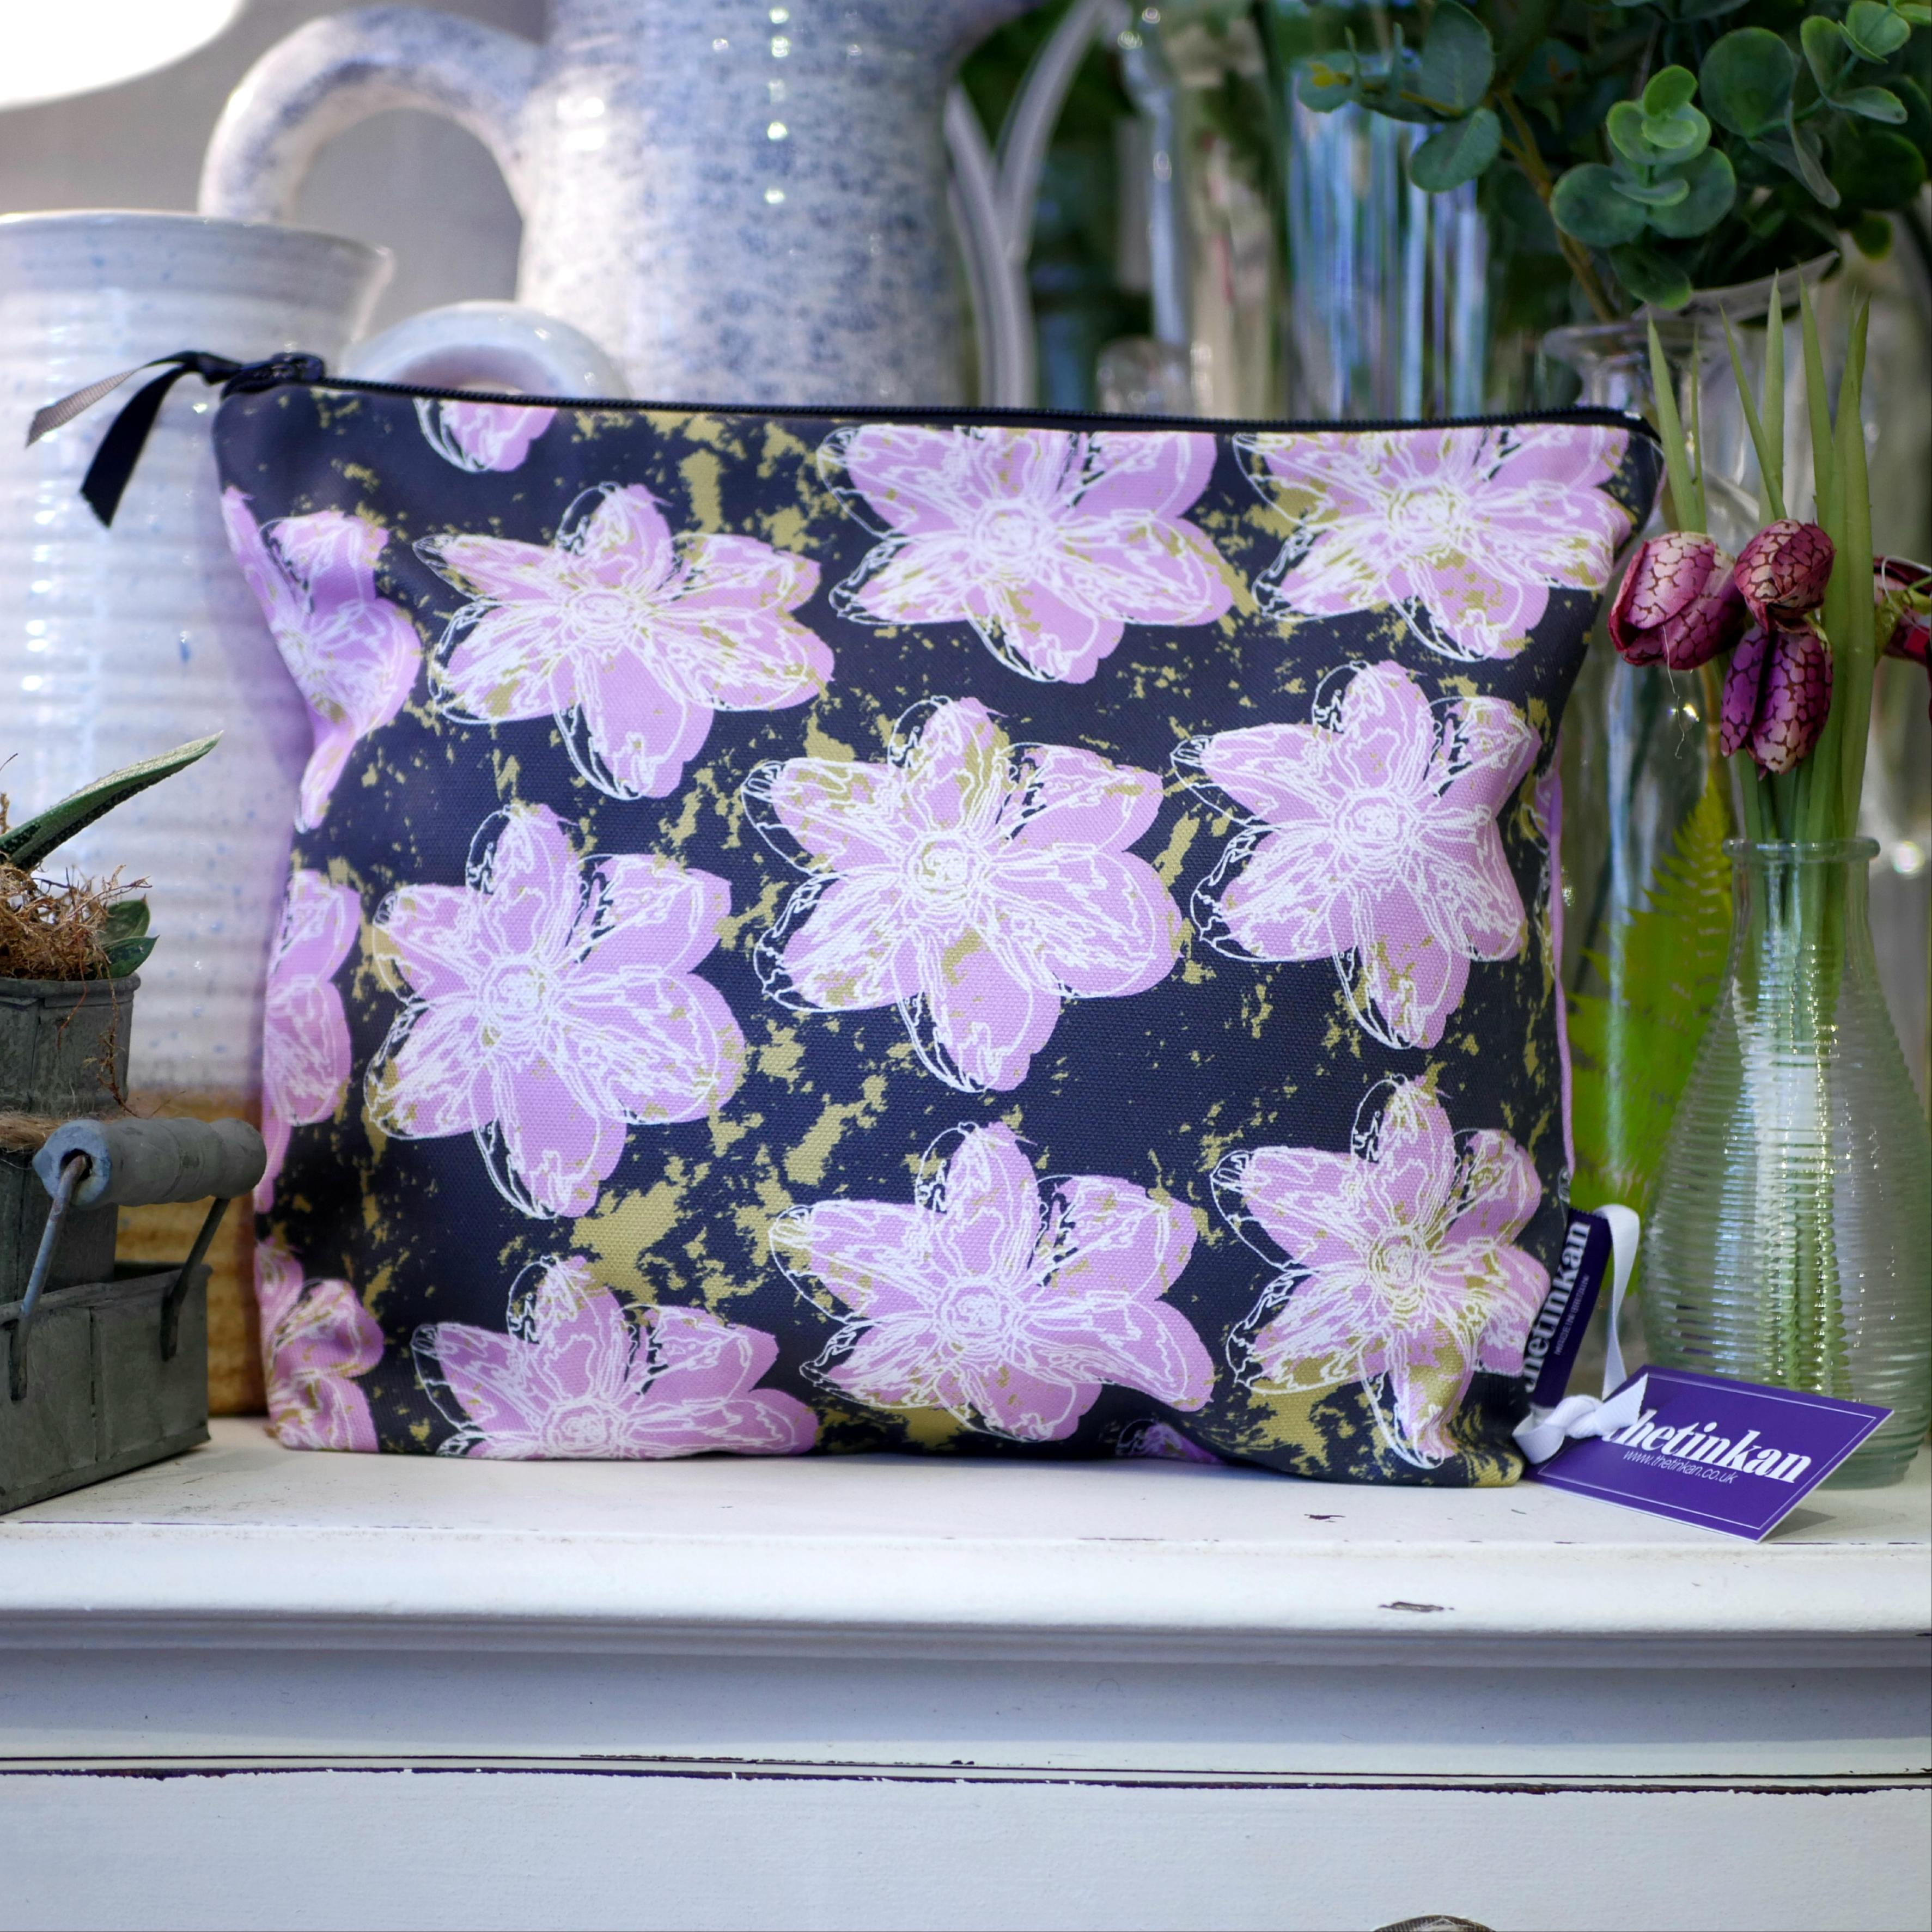 Candy pink flower with a matching coloured reverse, set on a dark charcoal grey background with an olive green colour splash. Designed by thetinkan, the flower splash travel beauty washbag featuring the white traced outline of a?narcissus flower is made from panama cotton with black waterproof lining and matching black sturdy zip. Generously sized for all your travel or home needs.? VIEW PRODUCT >>